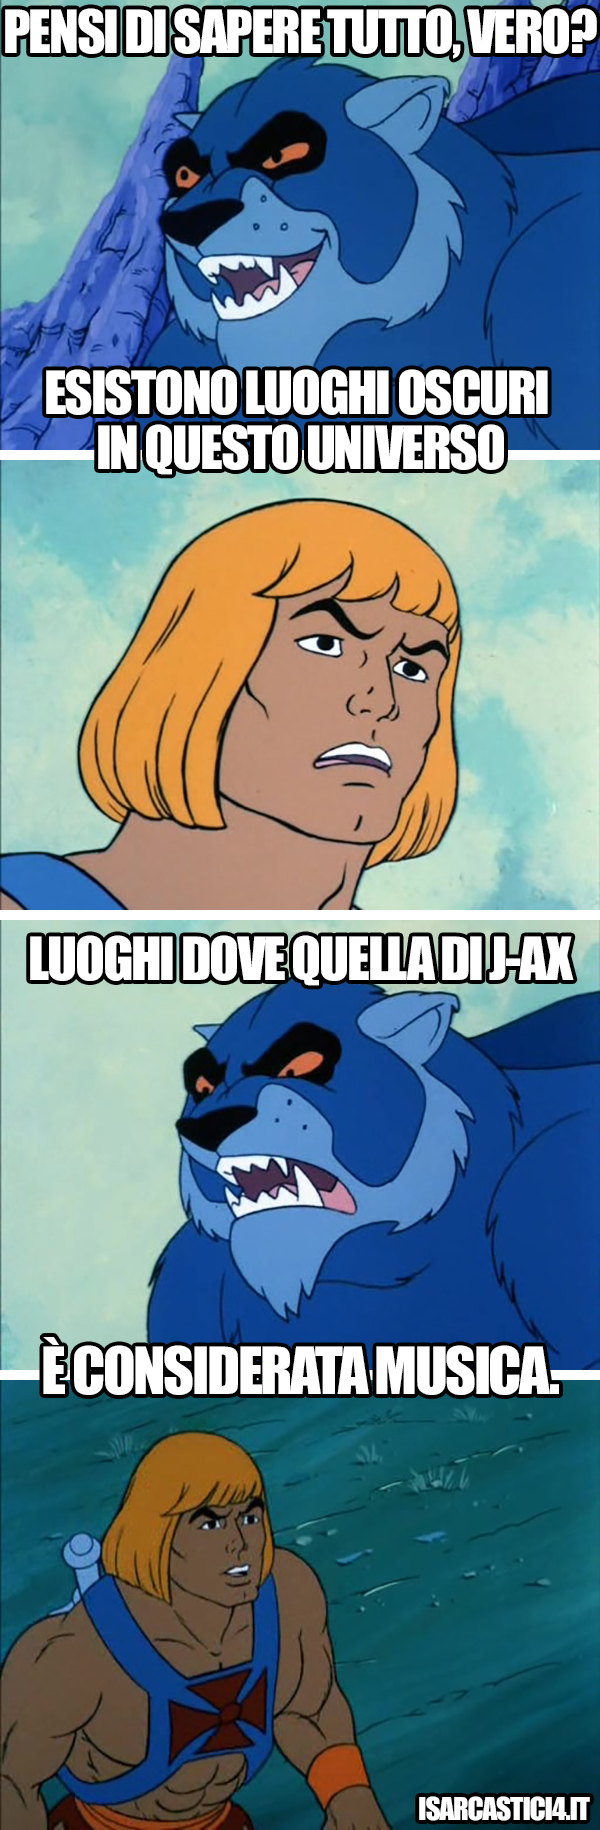 MOTU, Masters Of The Universe meme ita - Oscurità